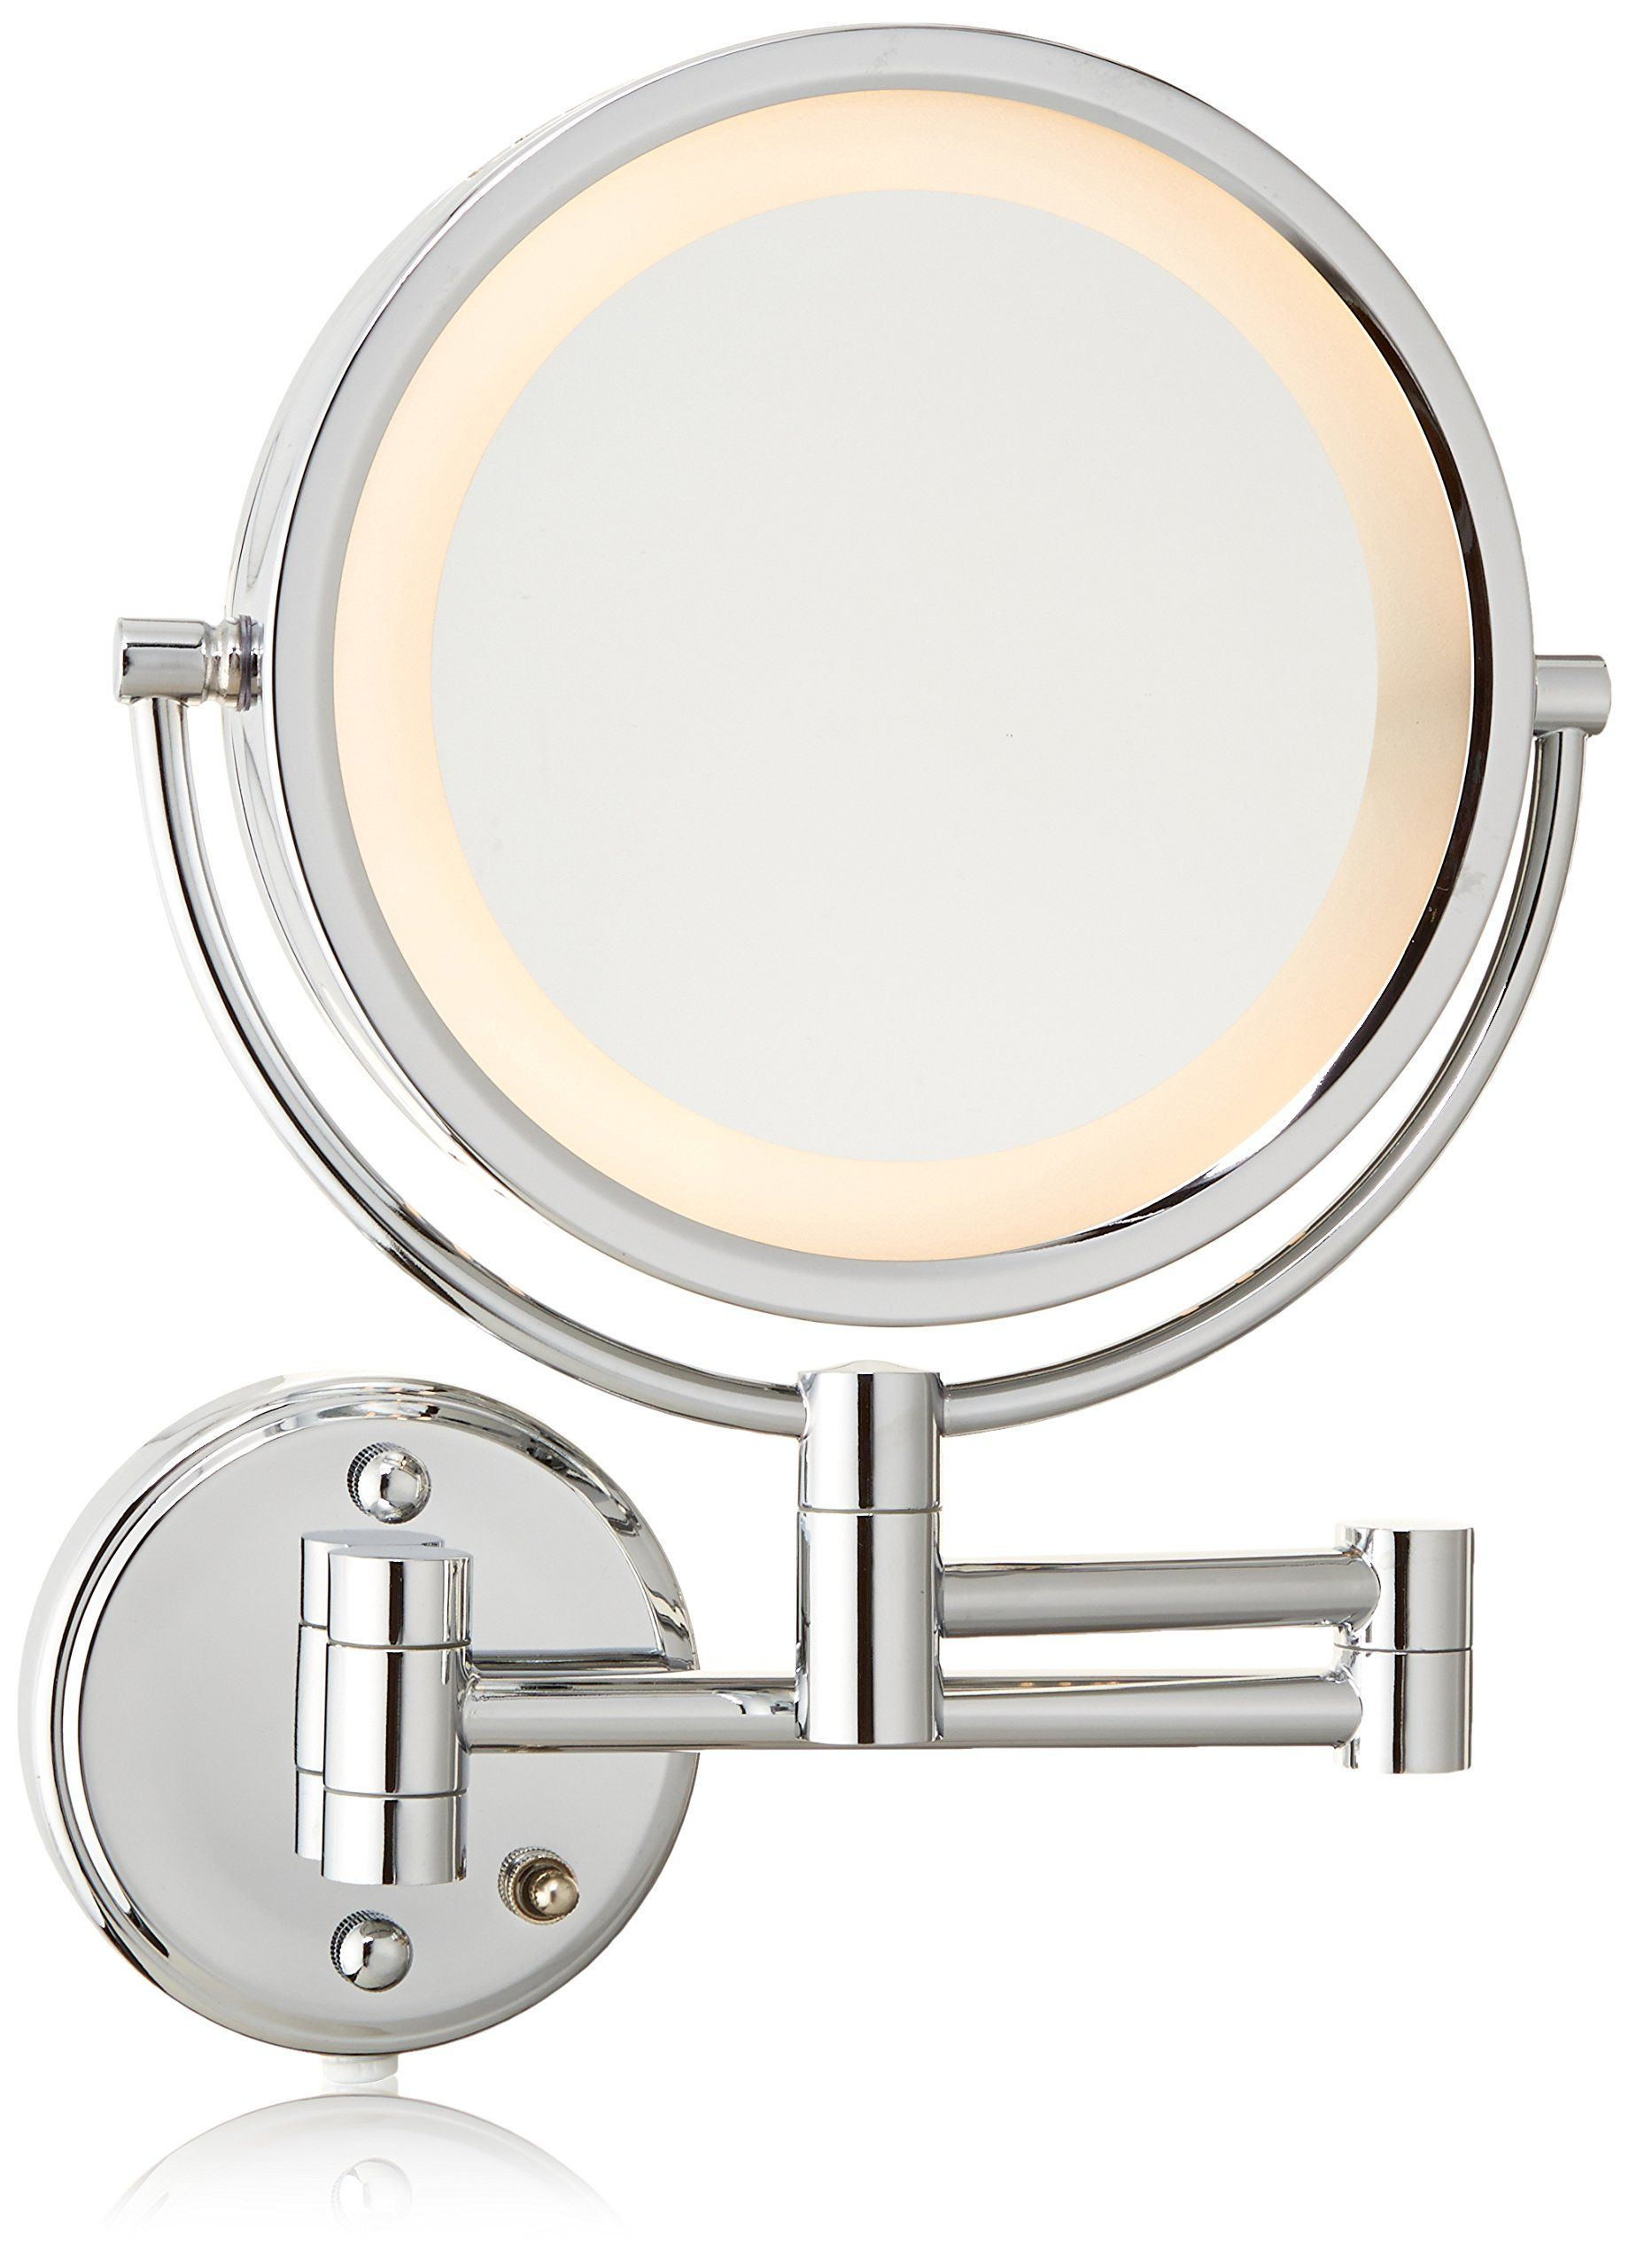 Jerdon Hl75c 8 5inch Lighted Wall Mount Makeup Mirror With 8x